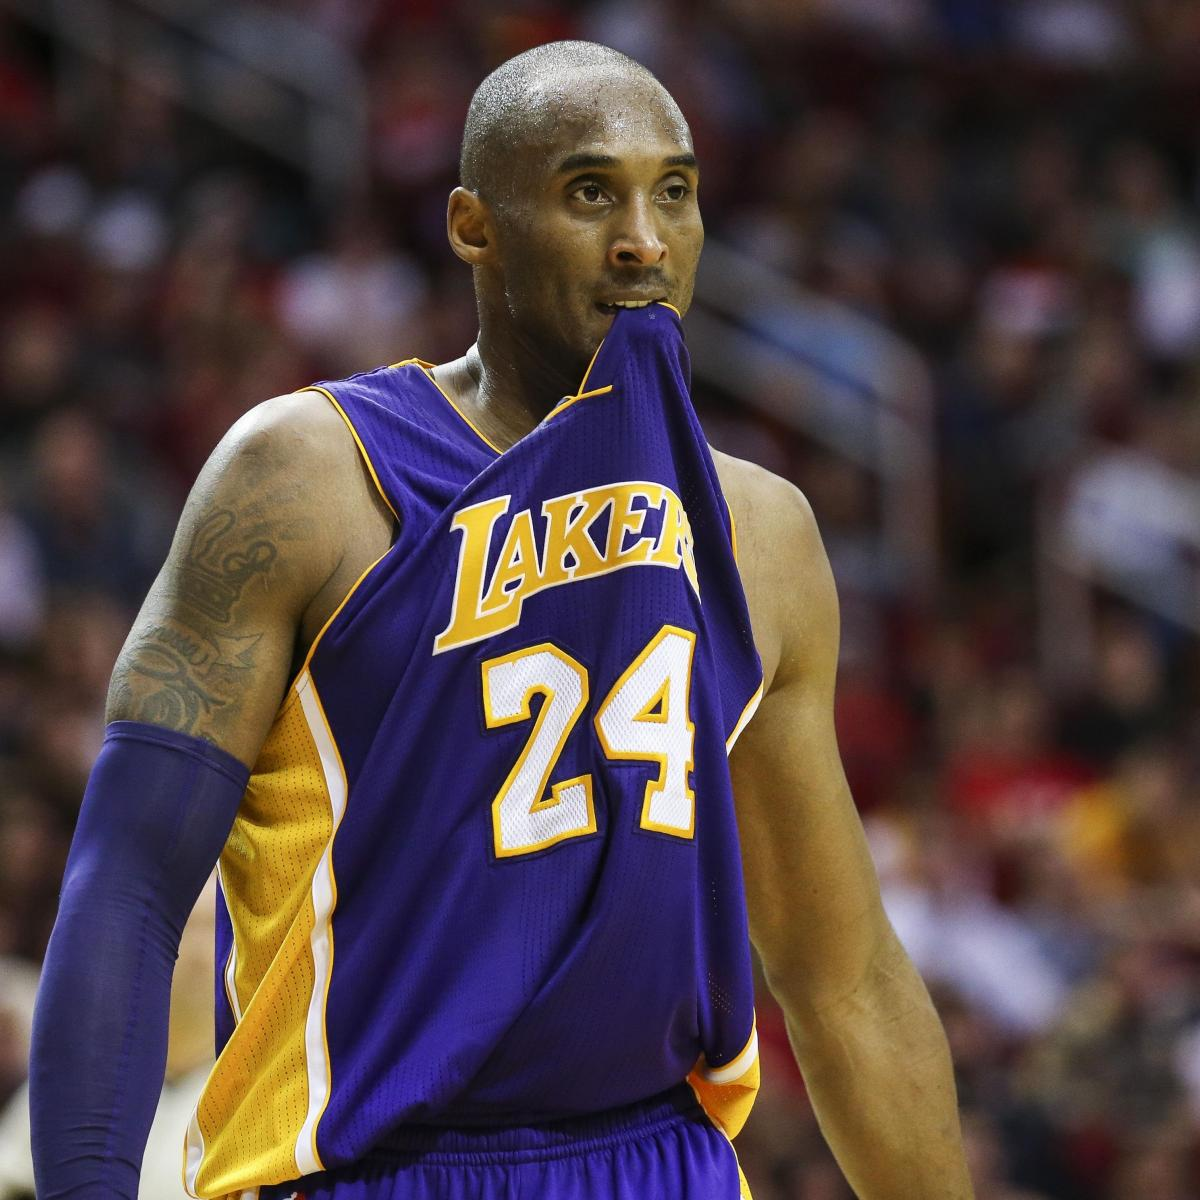 Get Lakers Vs Rockets Game 2 Final Score Images ...